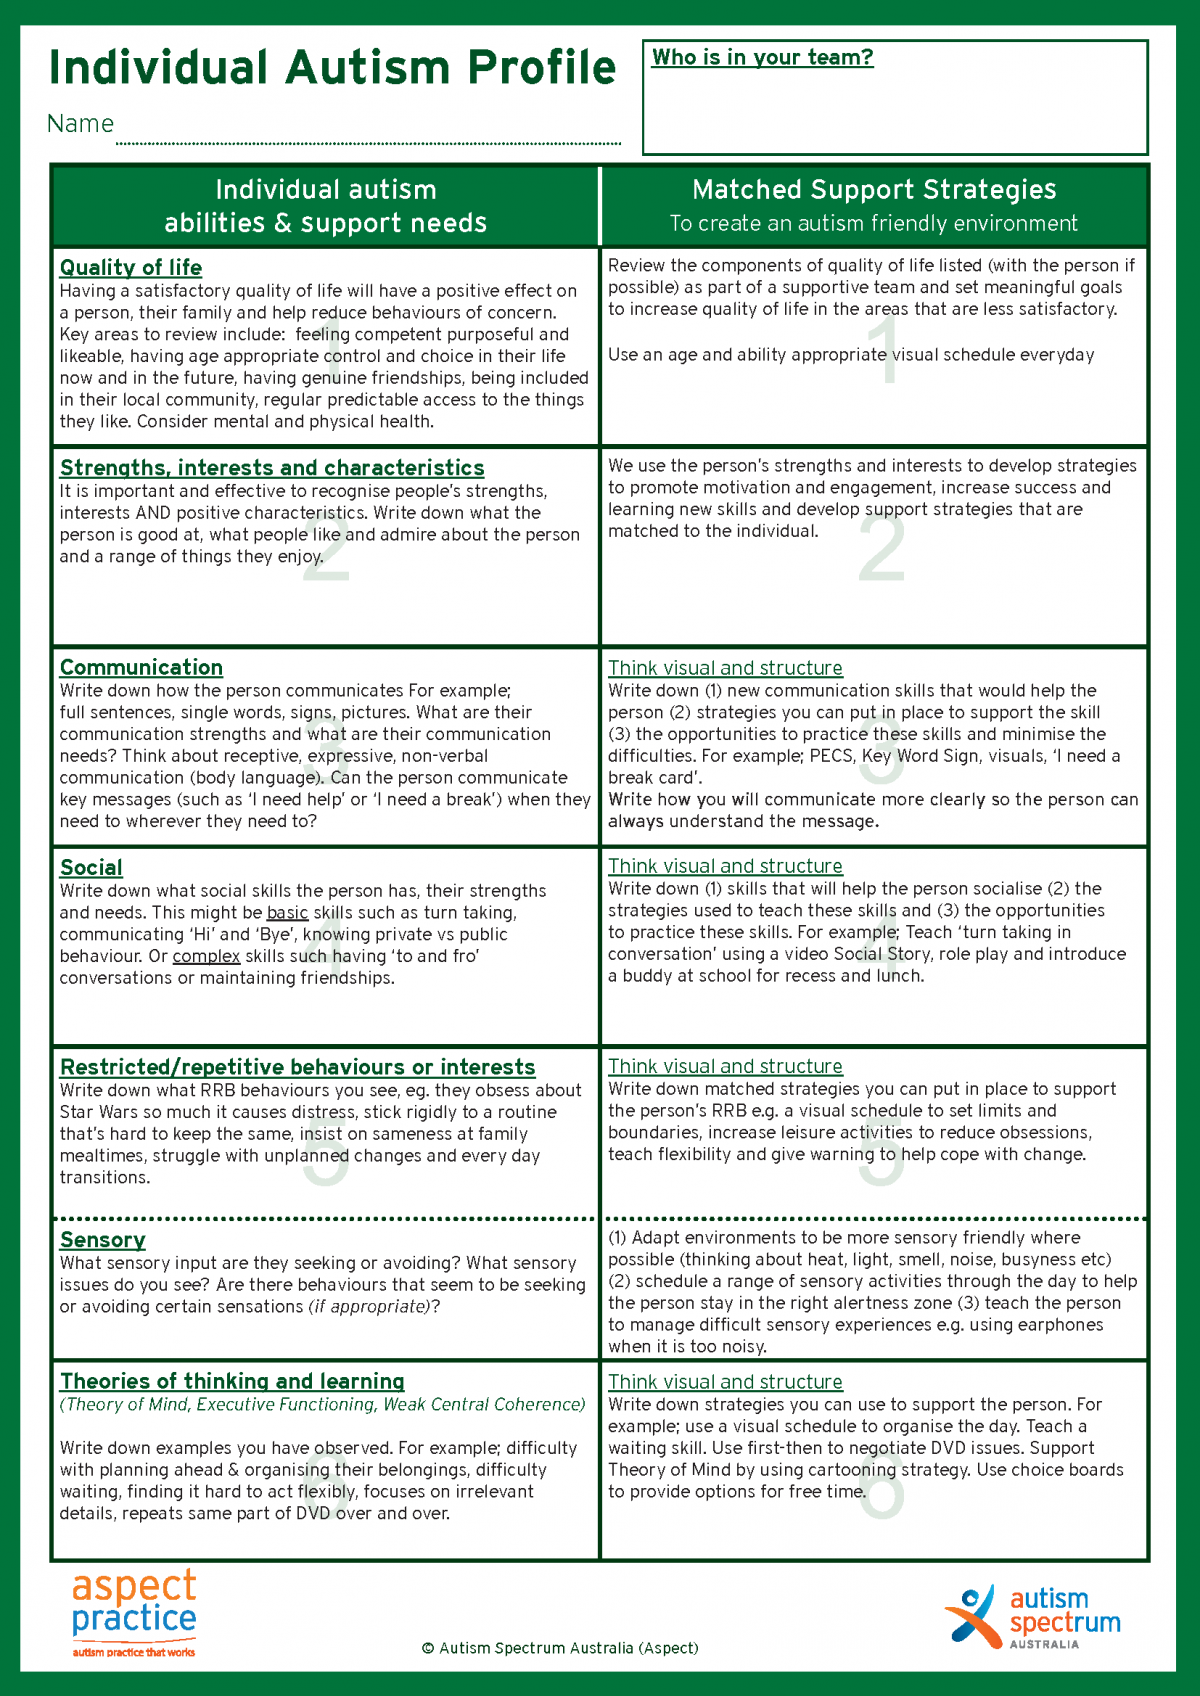 Aspect-Practice-PBS-Individual-Autism-Profile-Infomation-Sheet-2017_Page_6